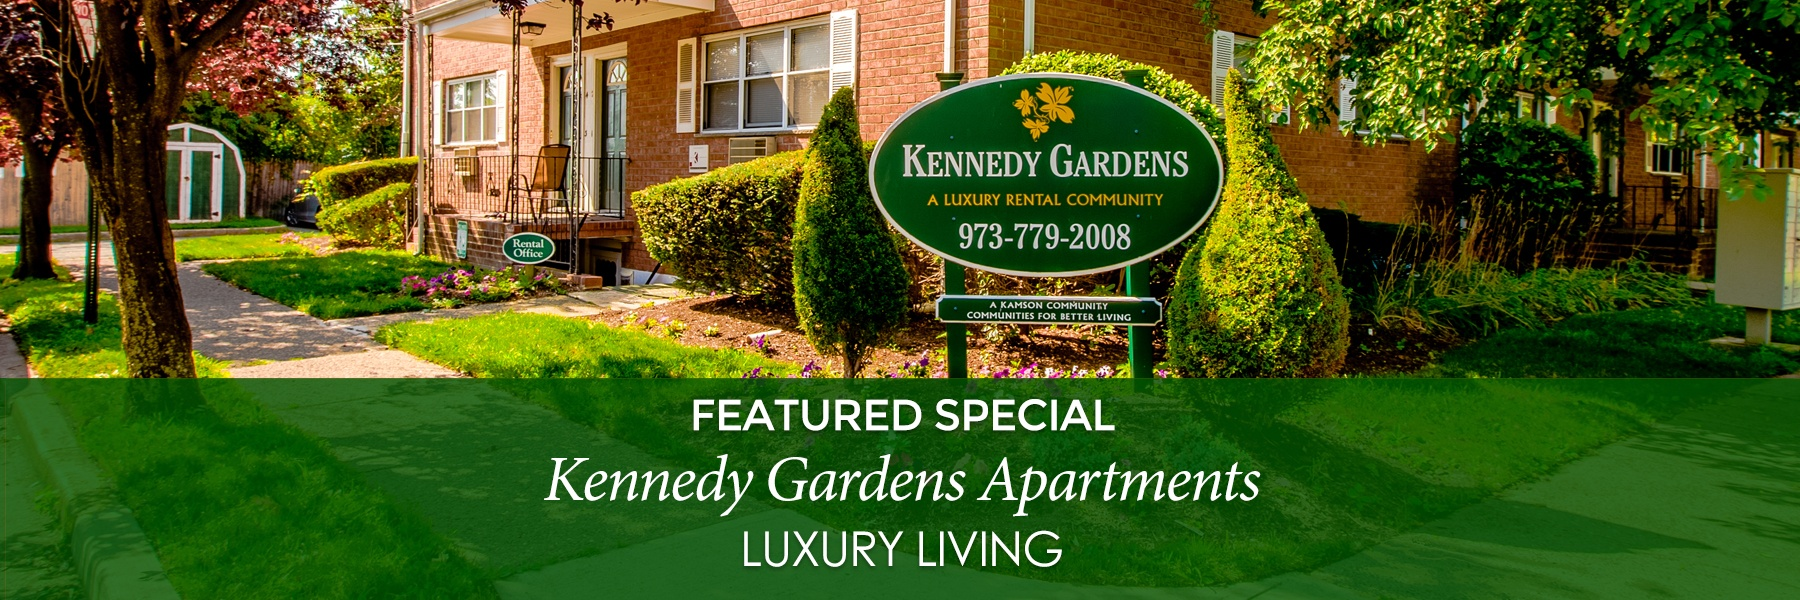 Kennedy Garden Apartments For Rent in Lodi, NJ Specials